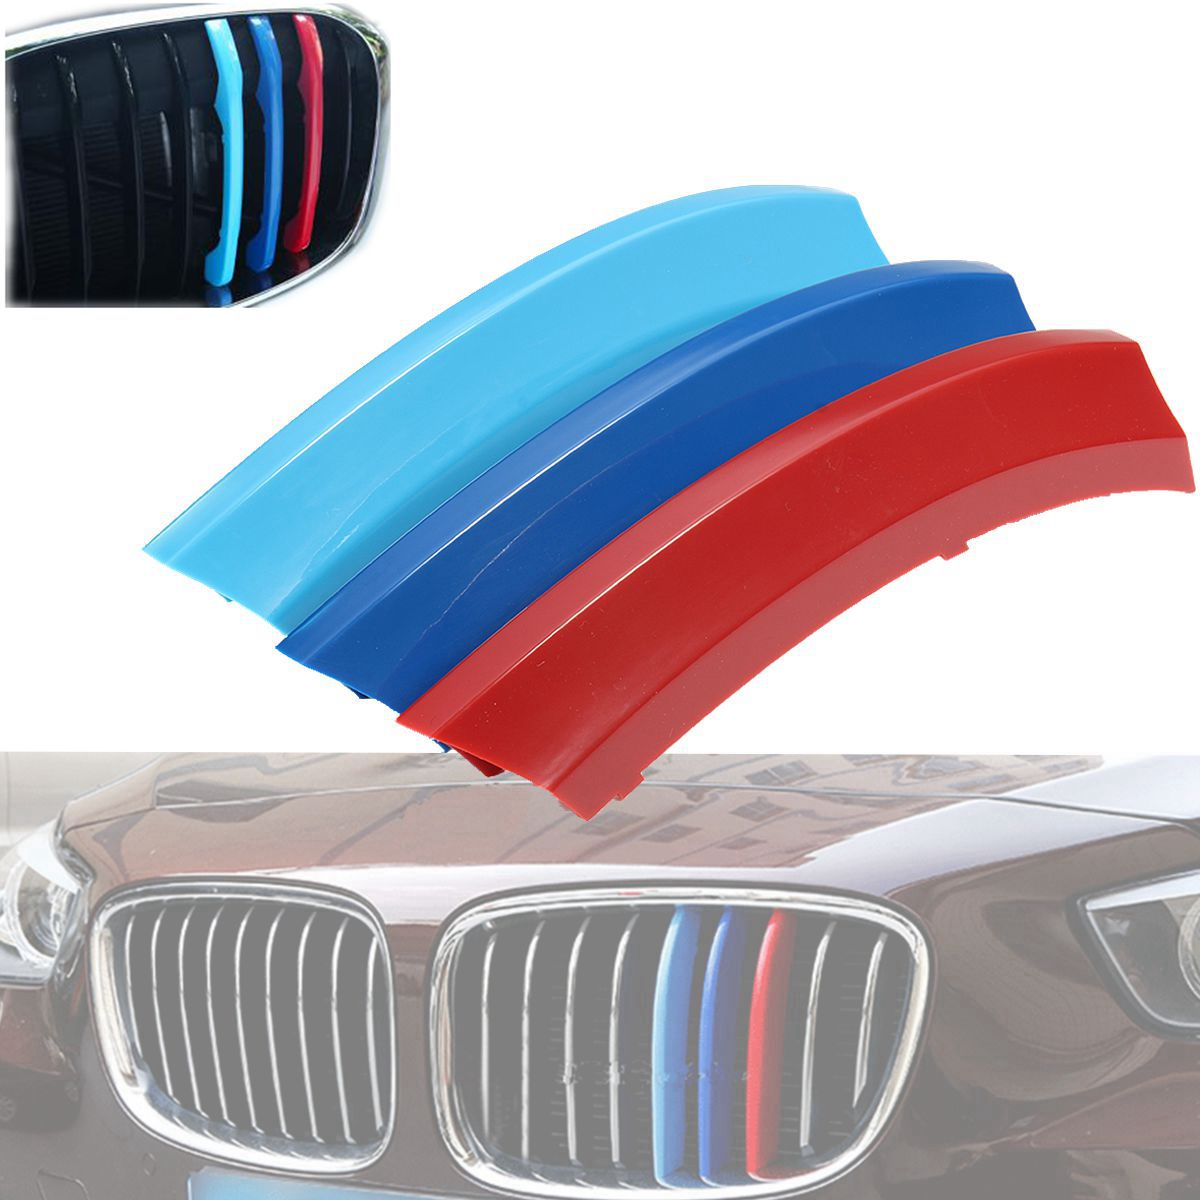 -Kidney Grills Insert accessories-M-Color Front Grille Stripe Decals For X1 E84 2009-2015 7 Grilles